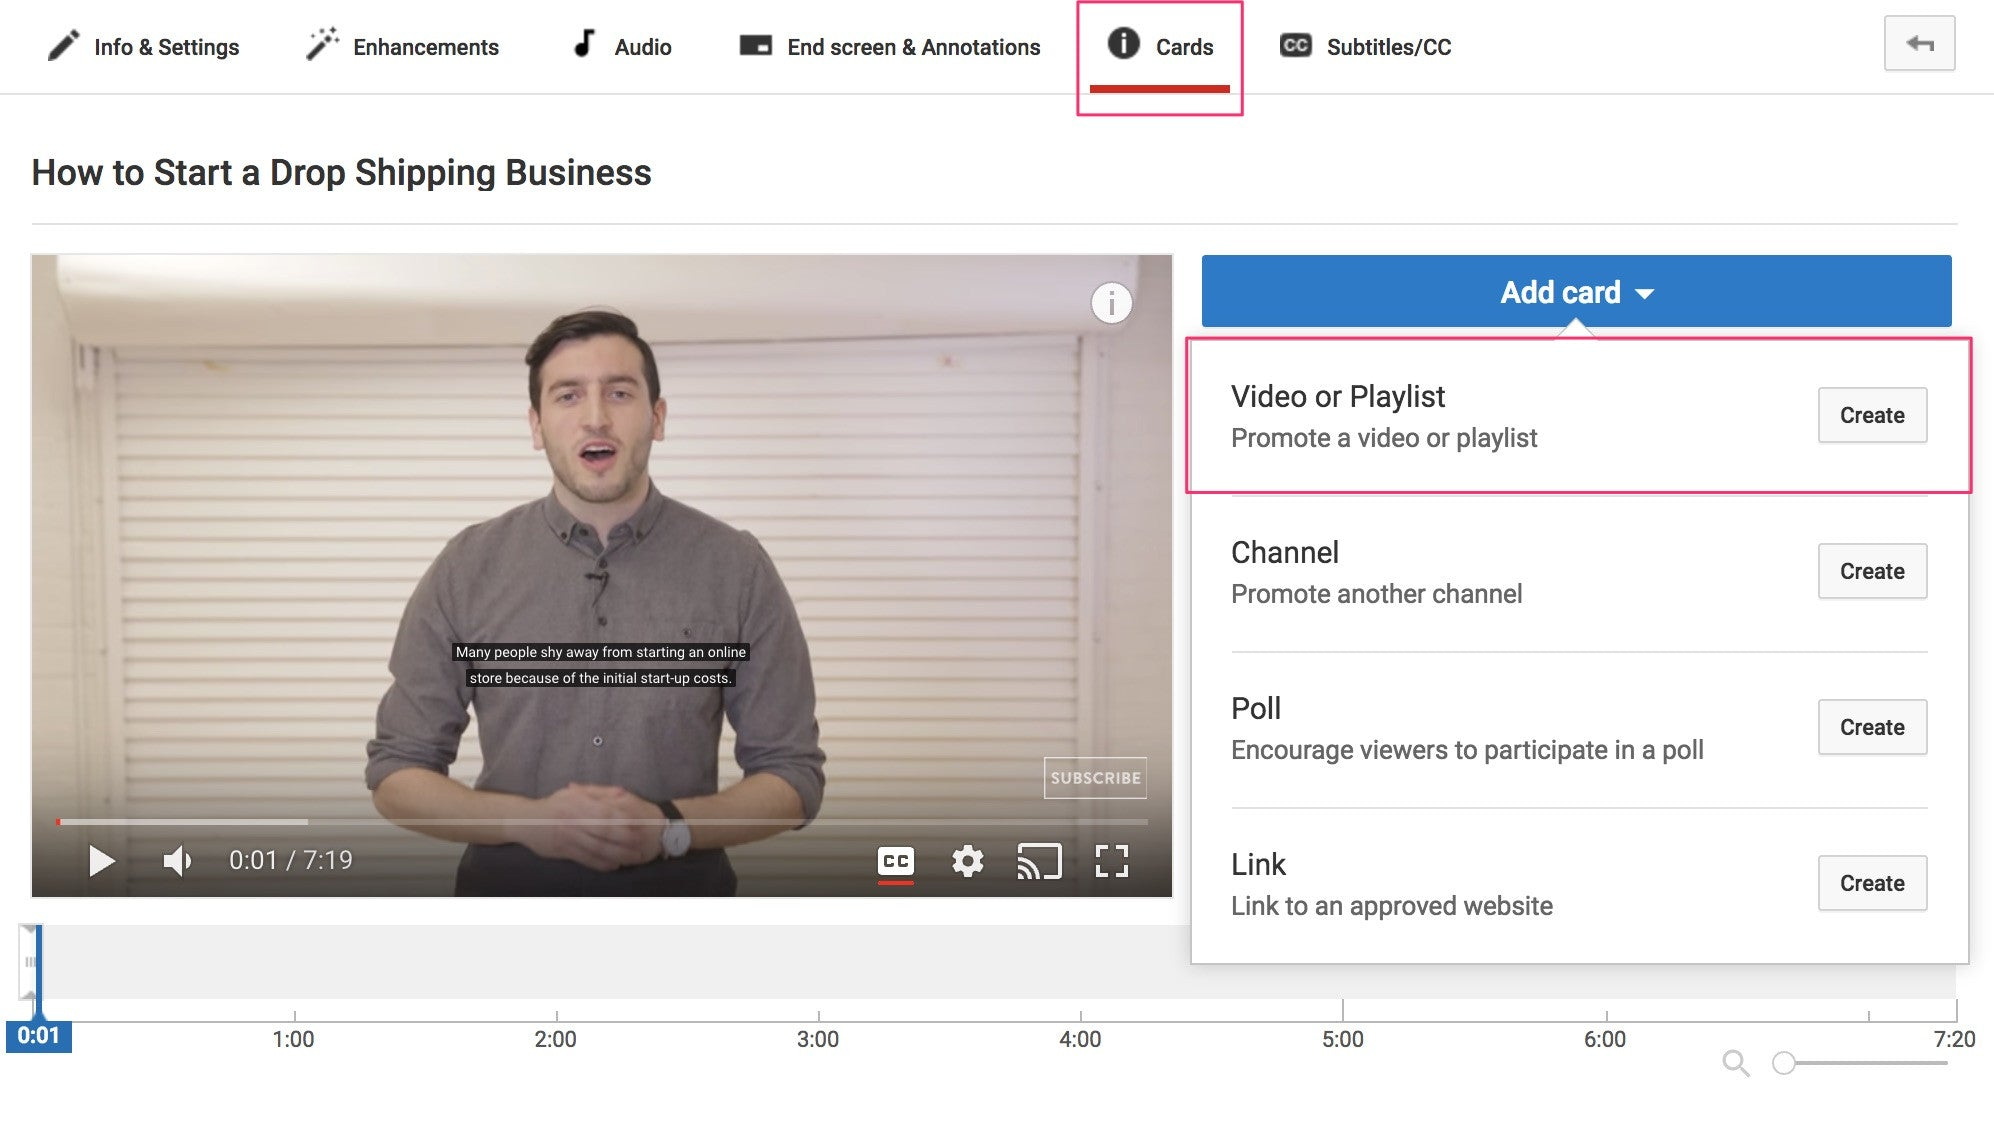 How to Get More YouTube Subscribers (The Way the Pros Do It)